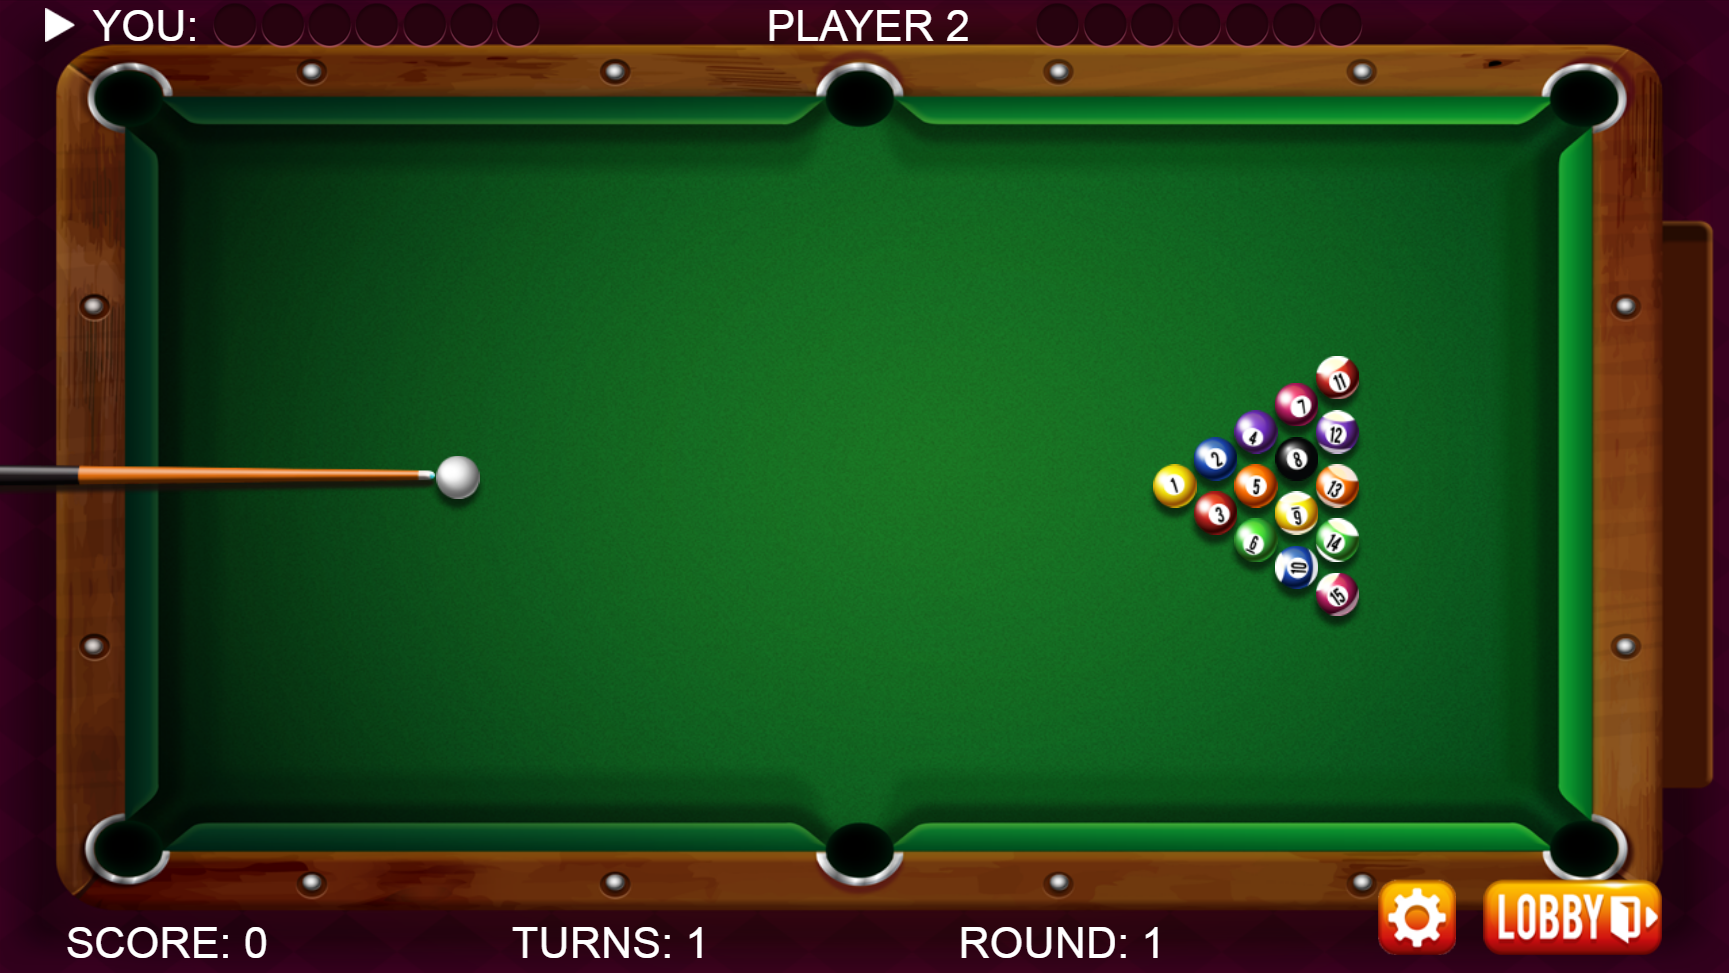 8 Ball Pool Billiards Html5 Sports Game By Dexterfly Codecanyon